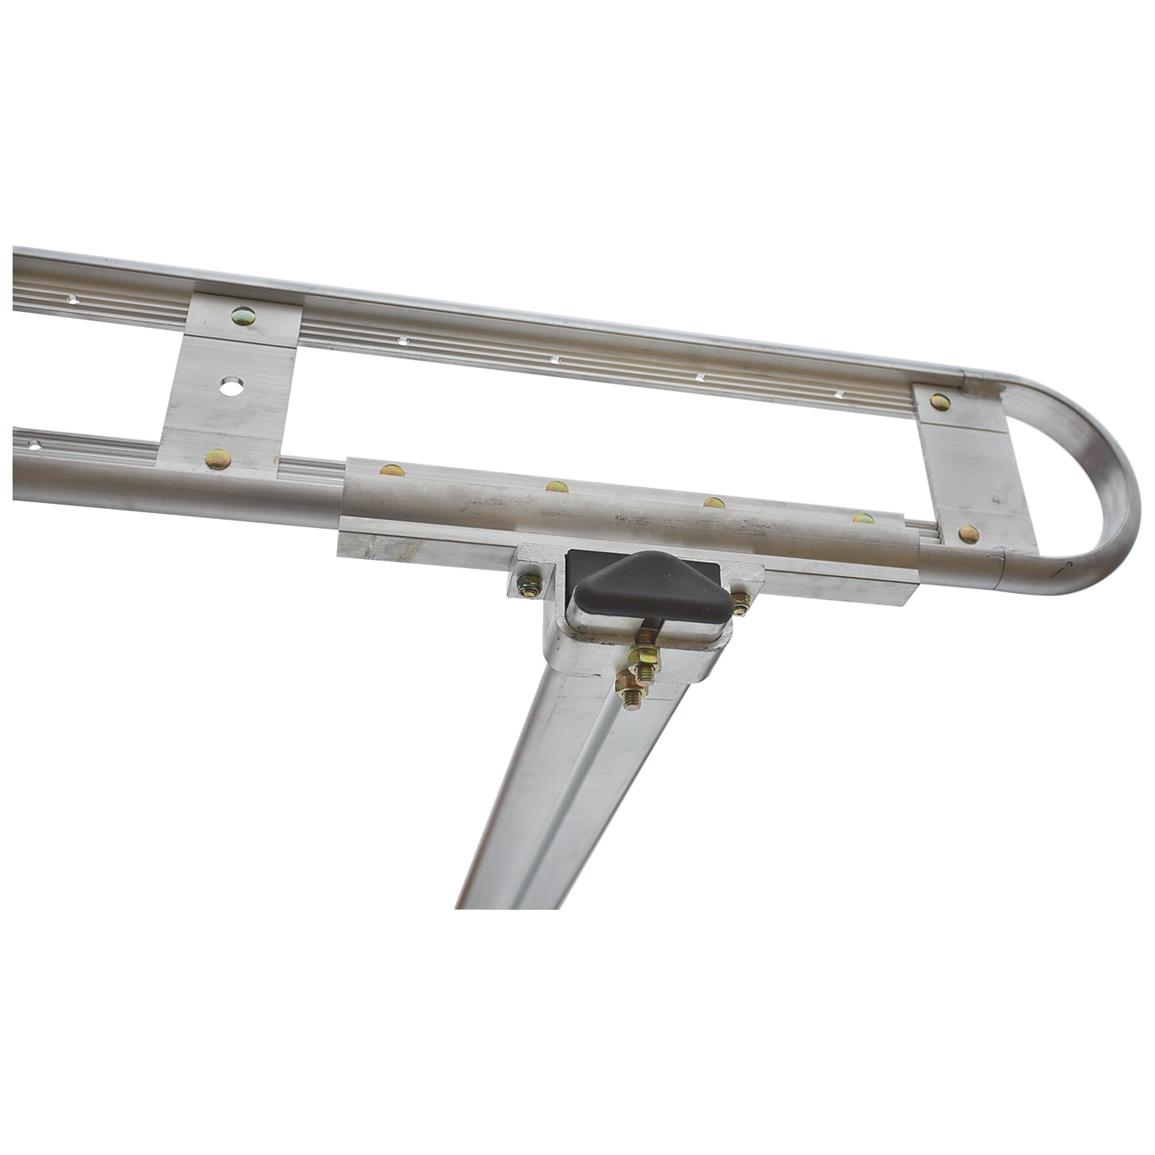 Rear grab handles help you climb into the truck bed